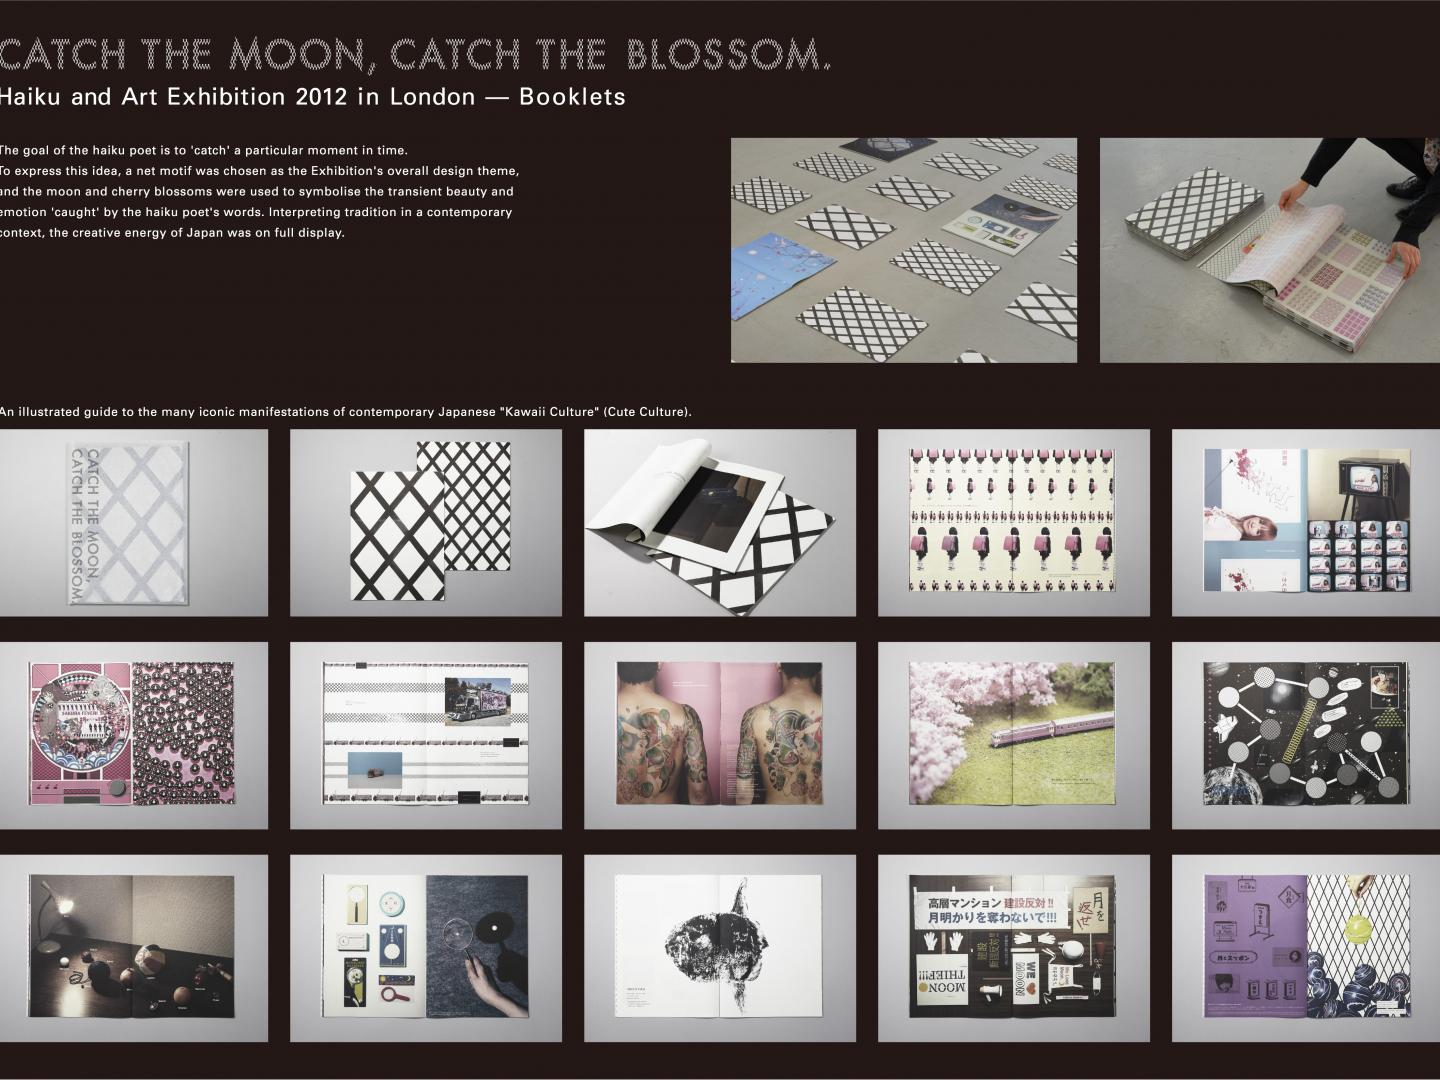 CATCH THE MOON,CATCH THE BLOSSOM. Thumbnail